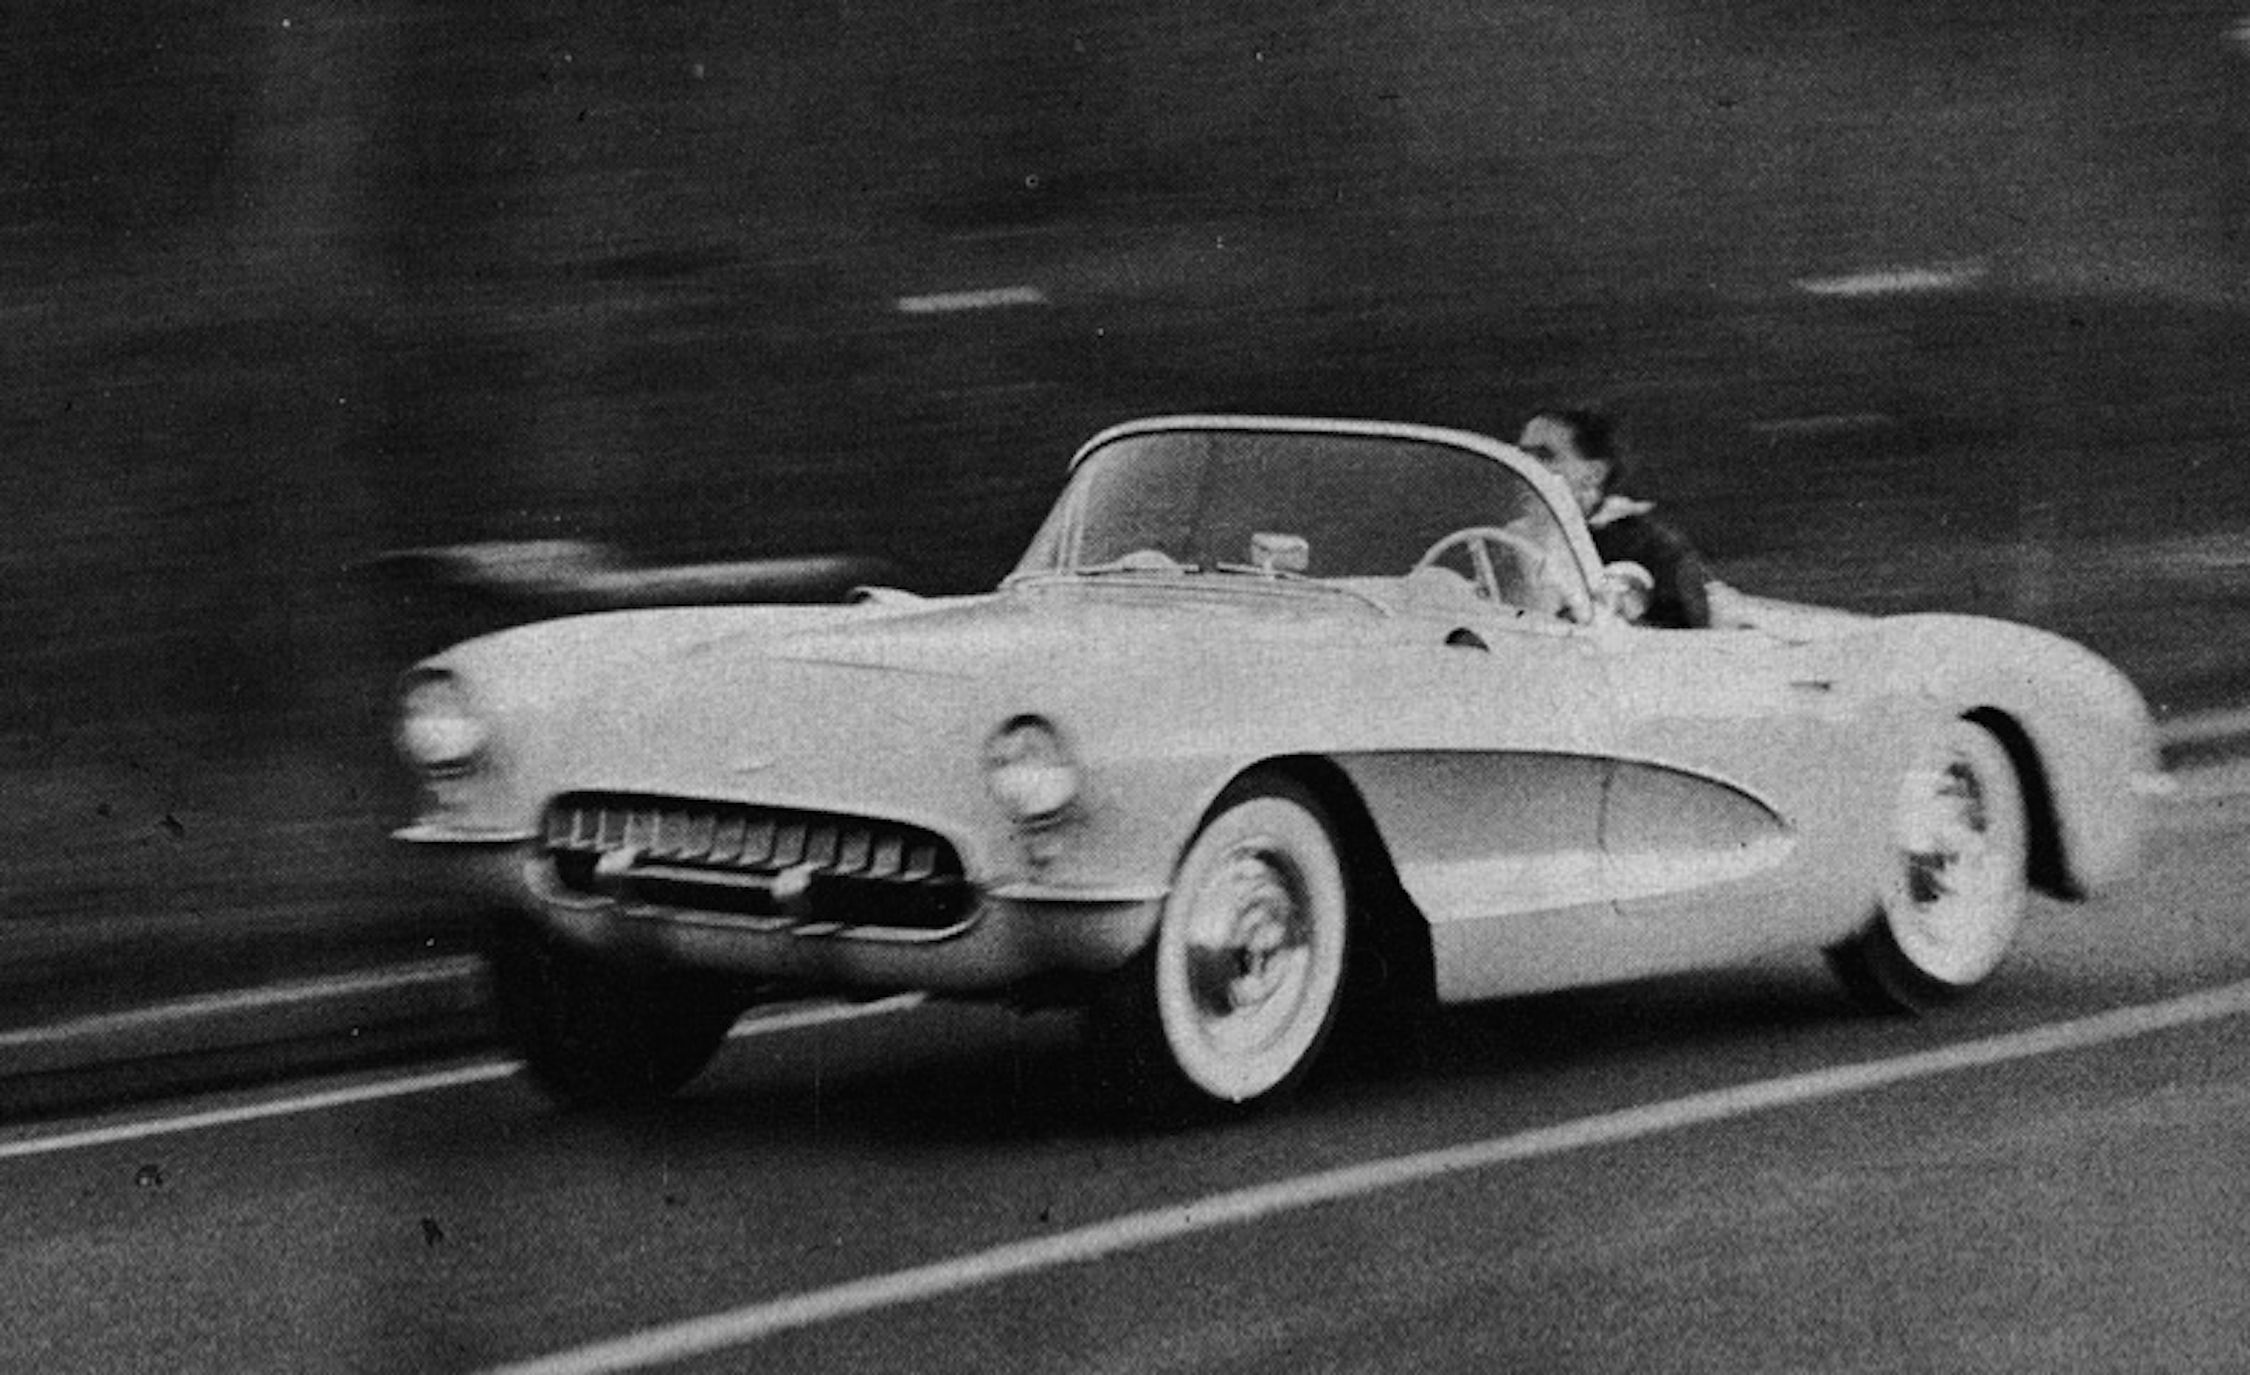 Car And Driver Tested The 10 Quickest Cars Of 1950s 1951 Chevrolet Police